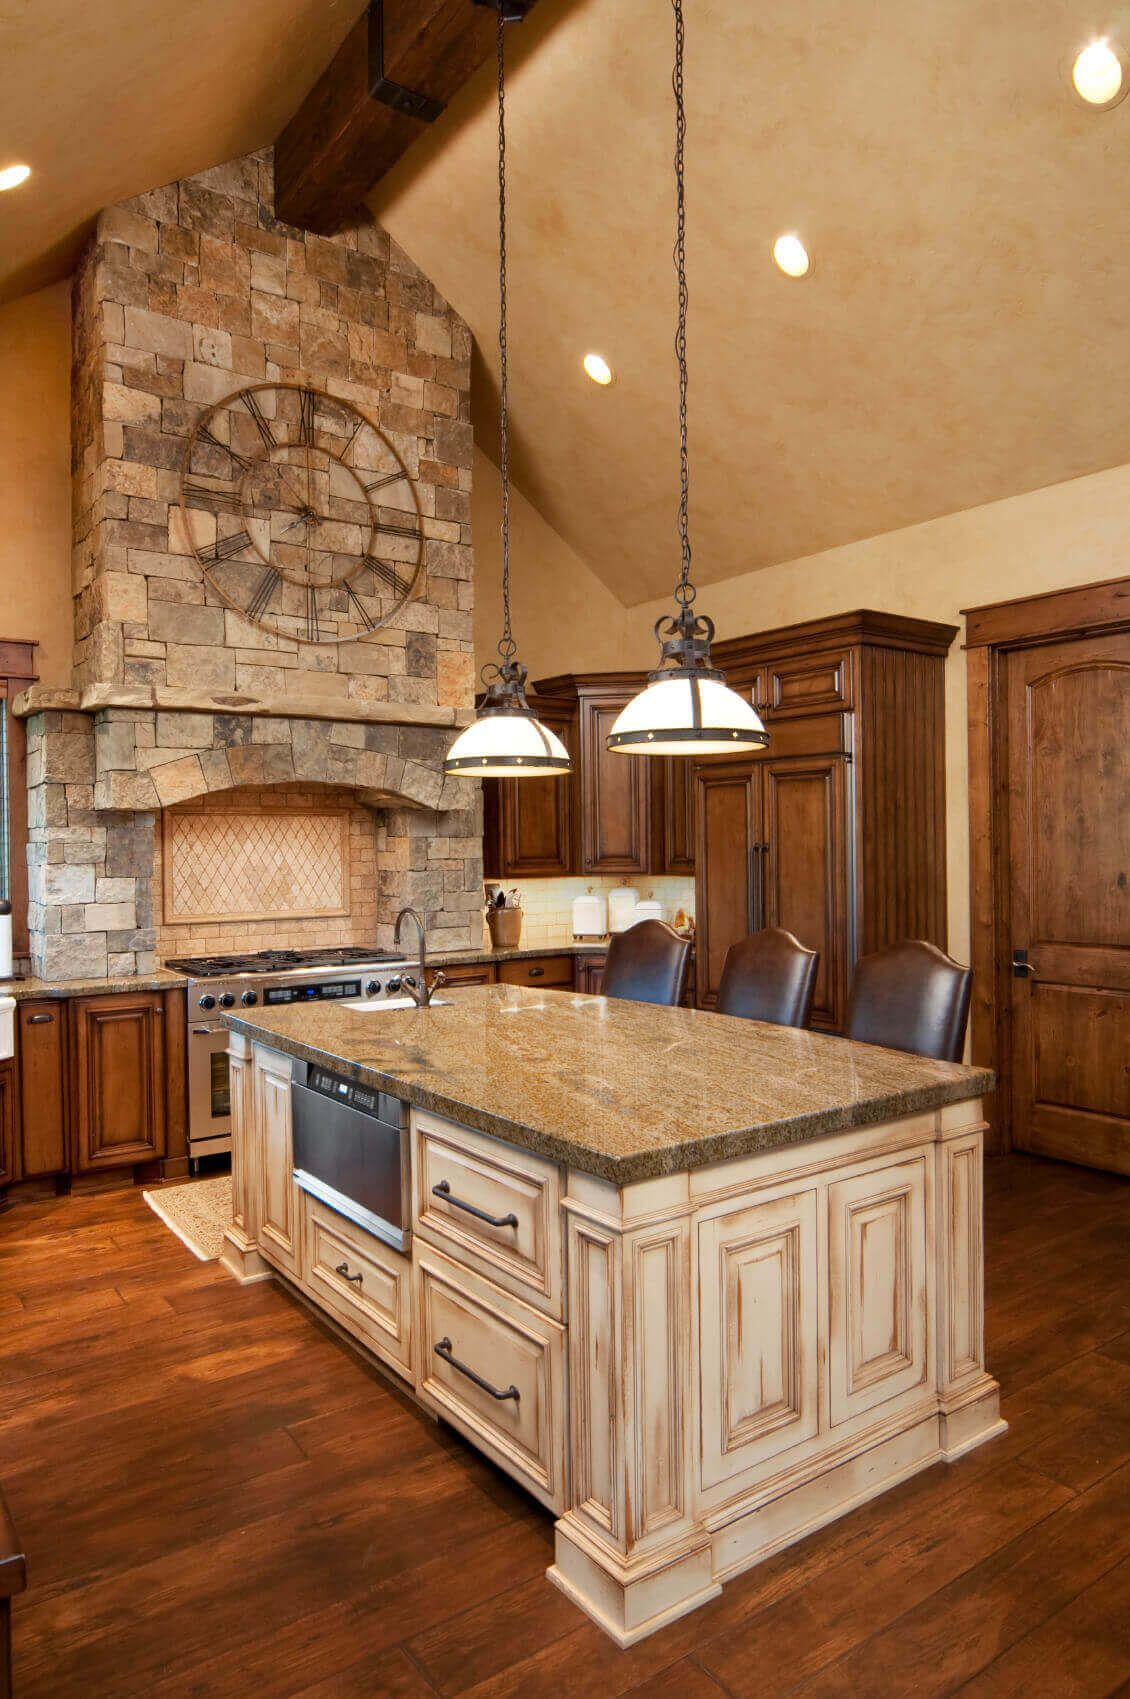 68+Deluxe Custom Kitchen Island Ideas (Jaw Dropping Designs ...